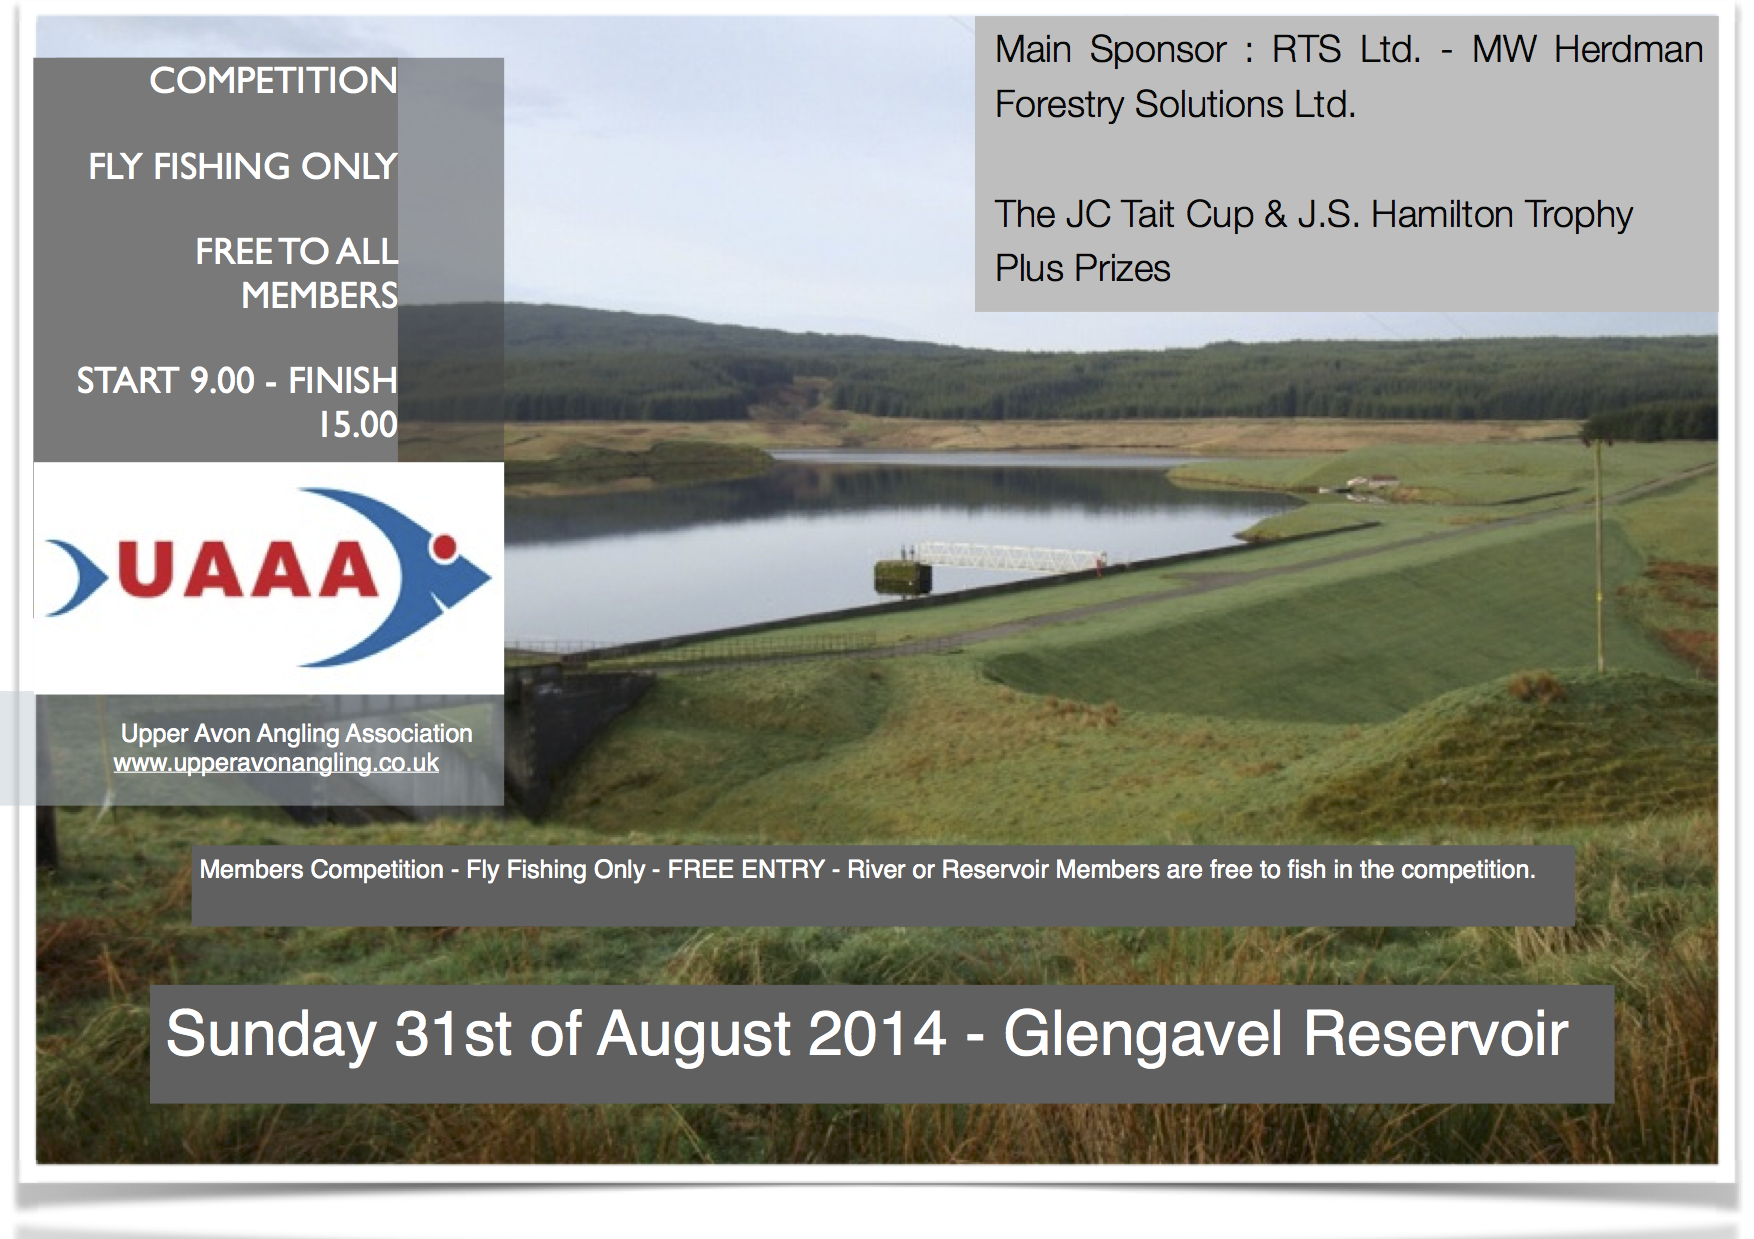 UAAA Members Competition August 31st 2014